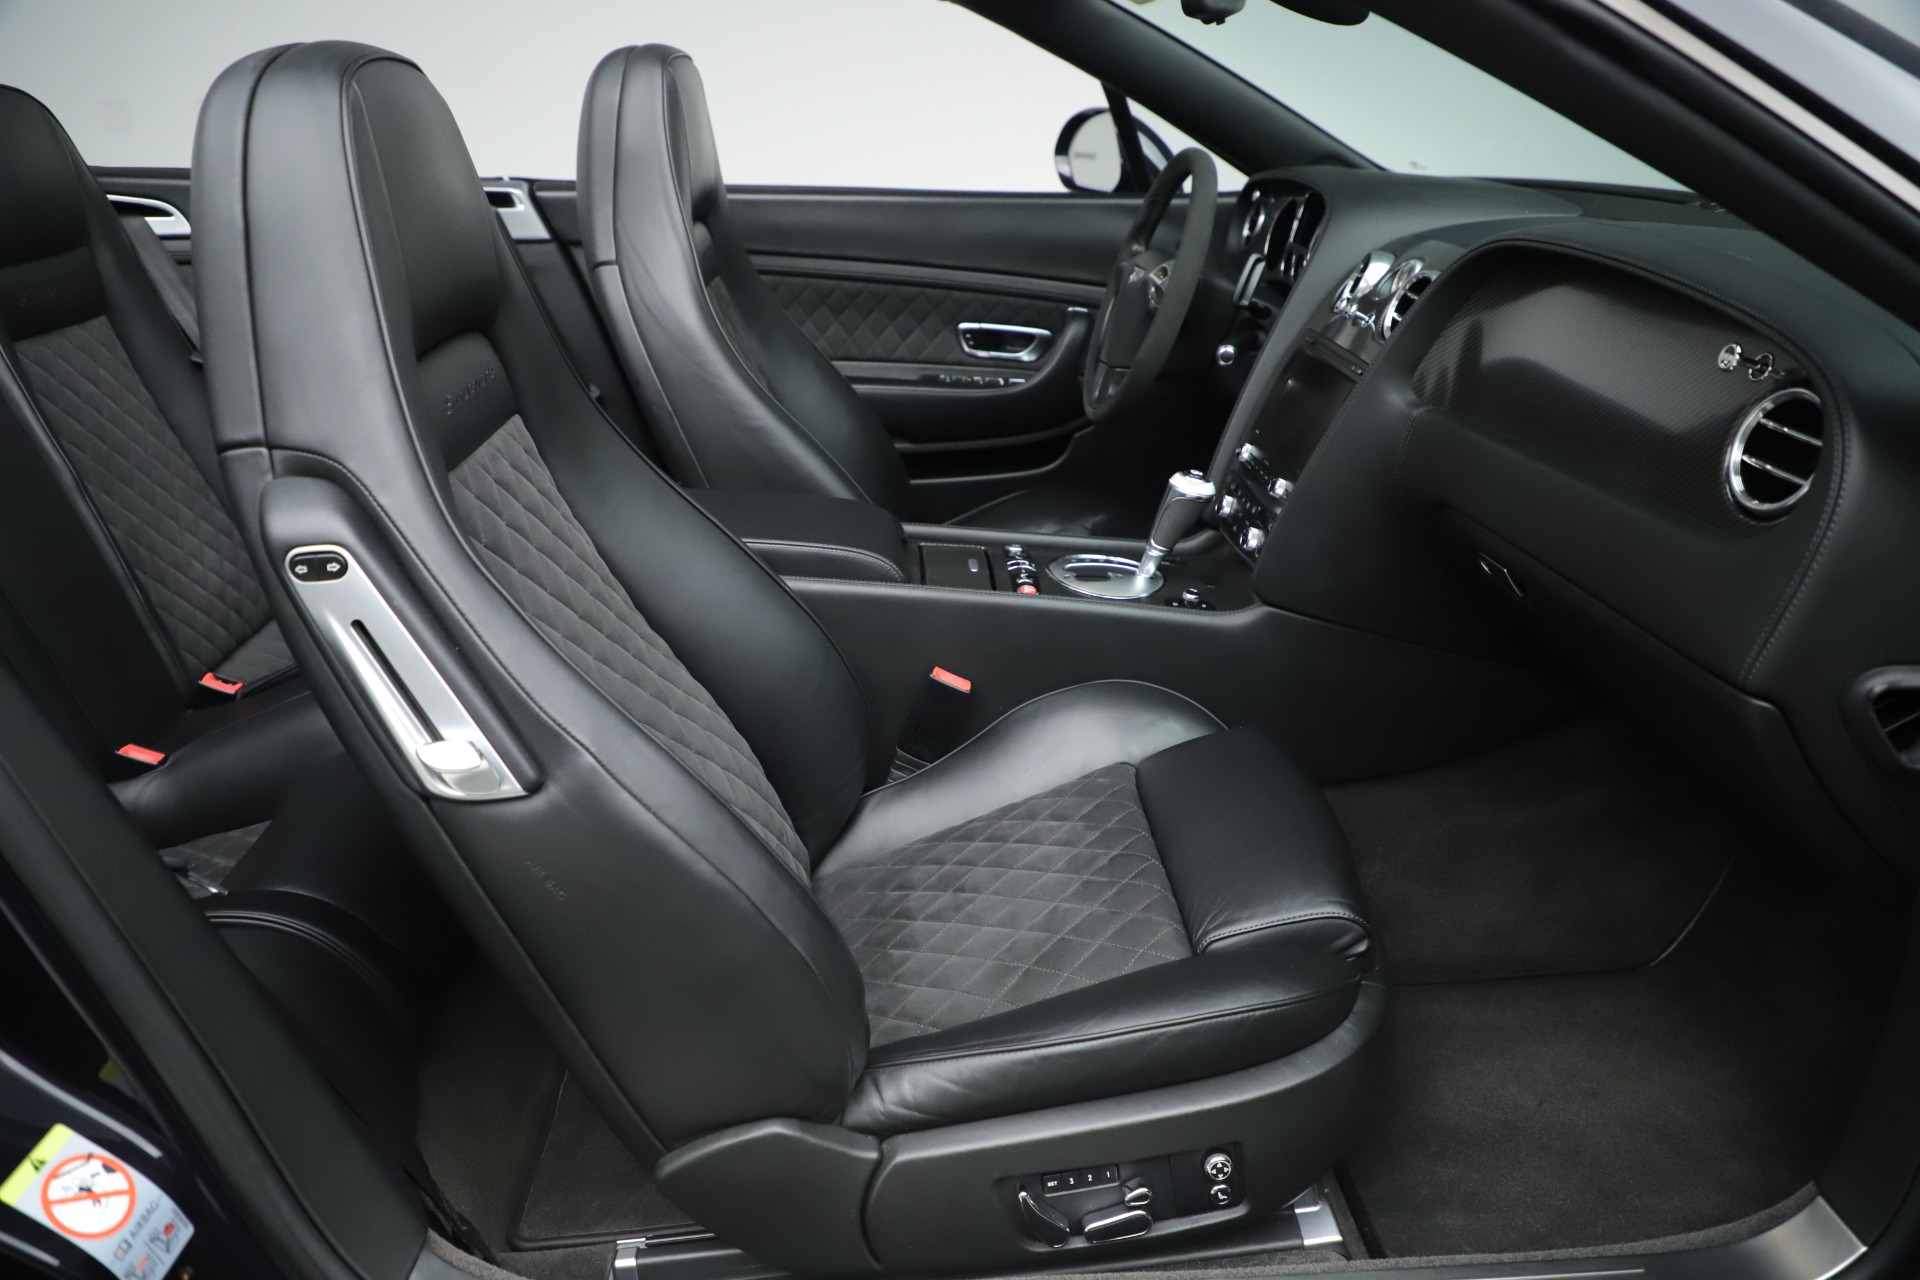 Used 2012 Bentley Continental GT Supersports For Sale In Westport, CT 3214_p29